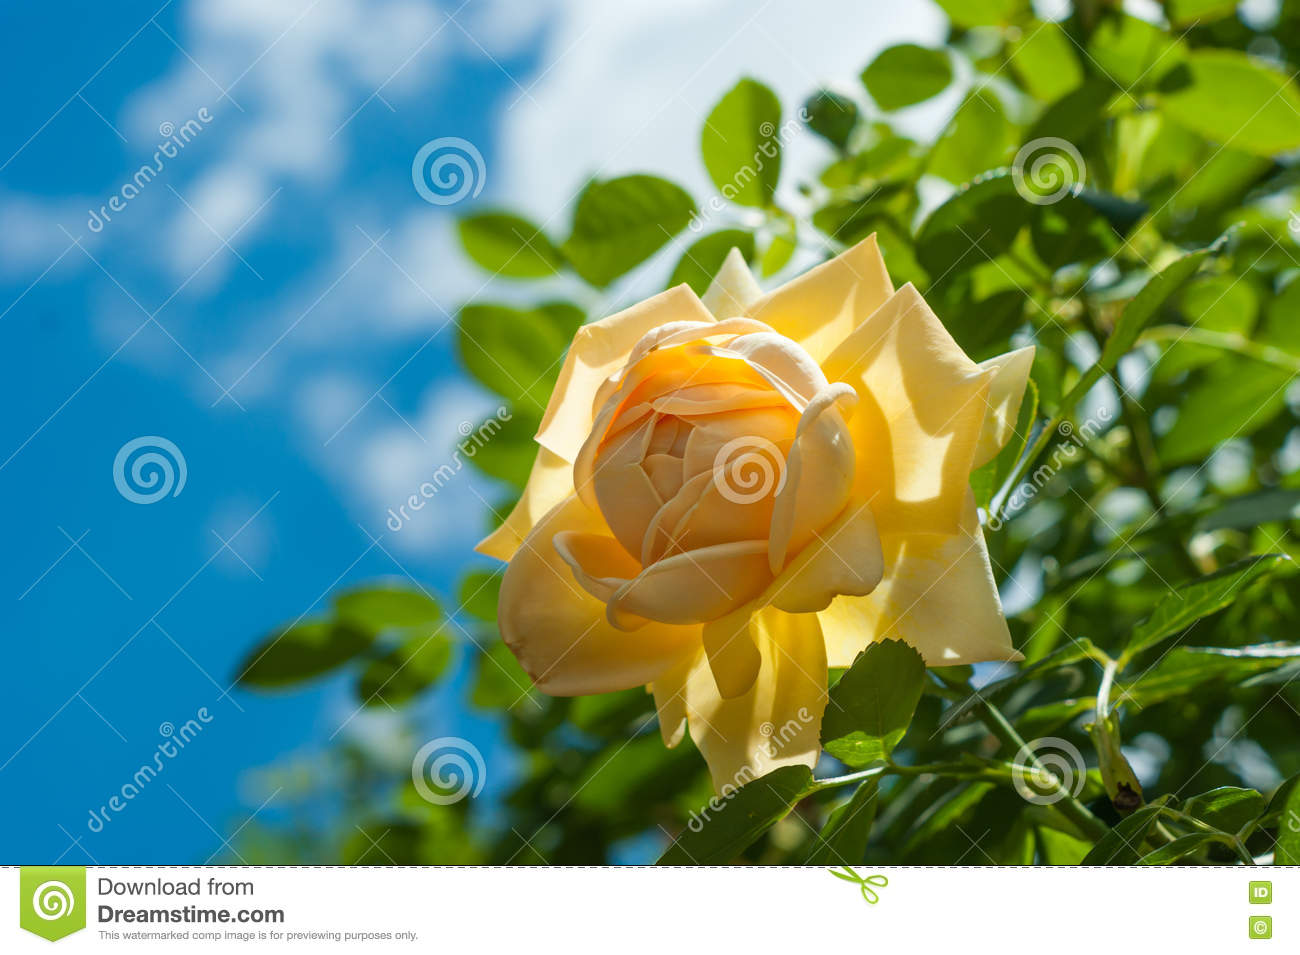 Yellow rose flower on blurred of blue sky background stock photo background blue blurred clouds flower rose sky yellow dhlflorist Image collections